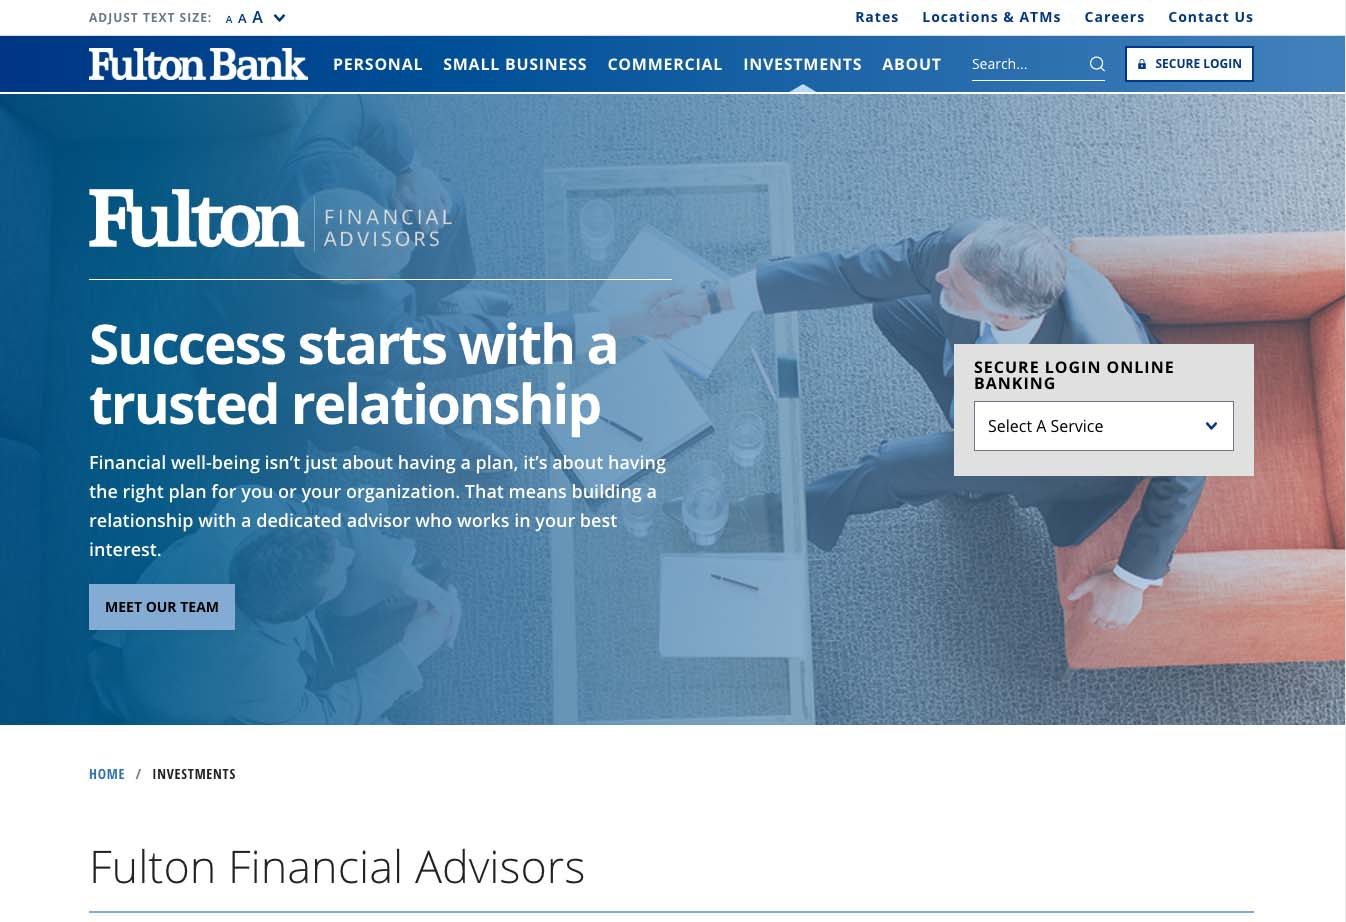 Part of Fulton Financial Advisors homepage design.